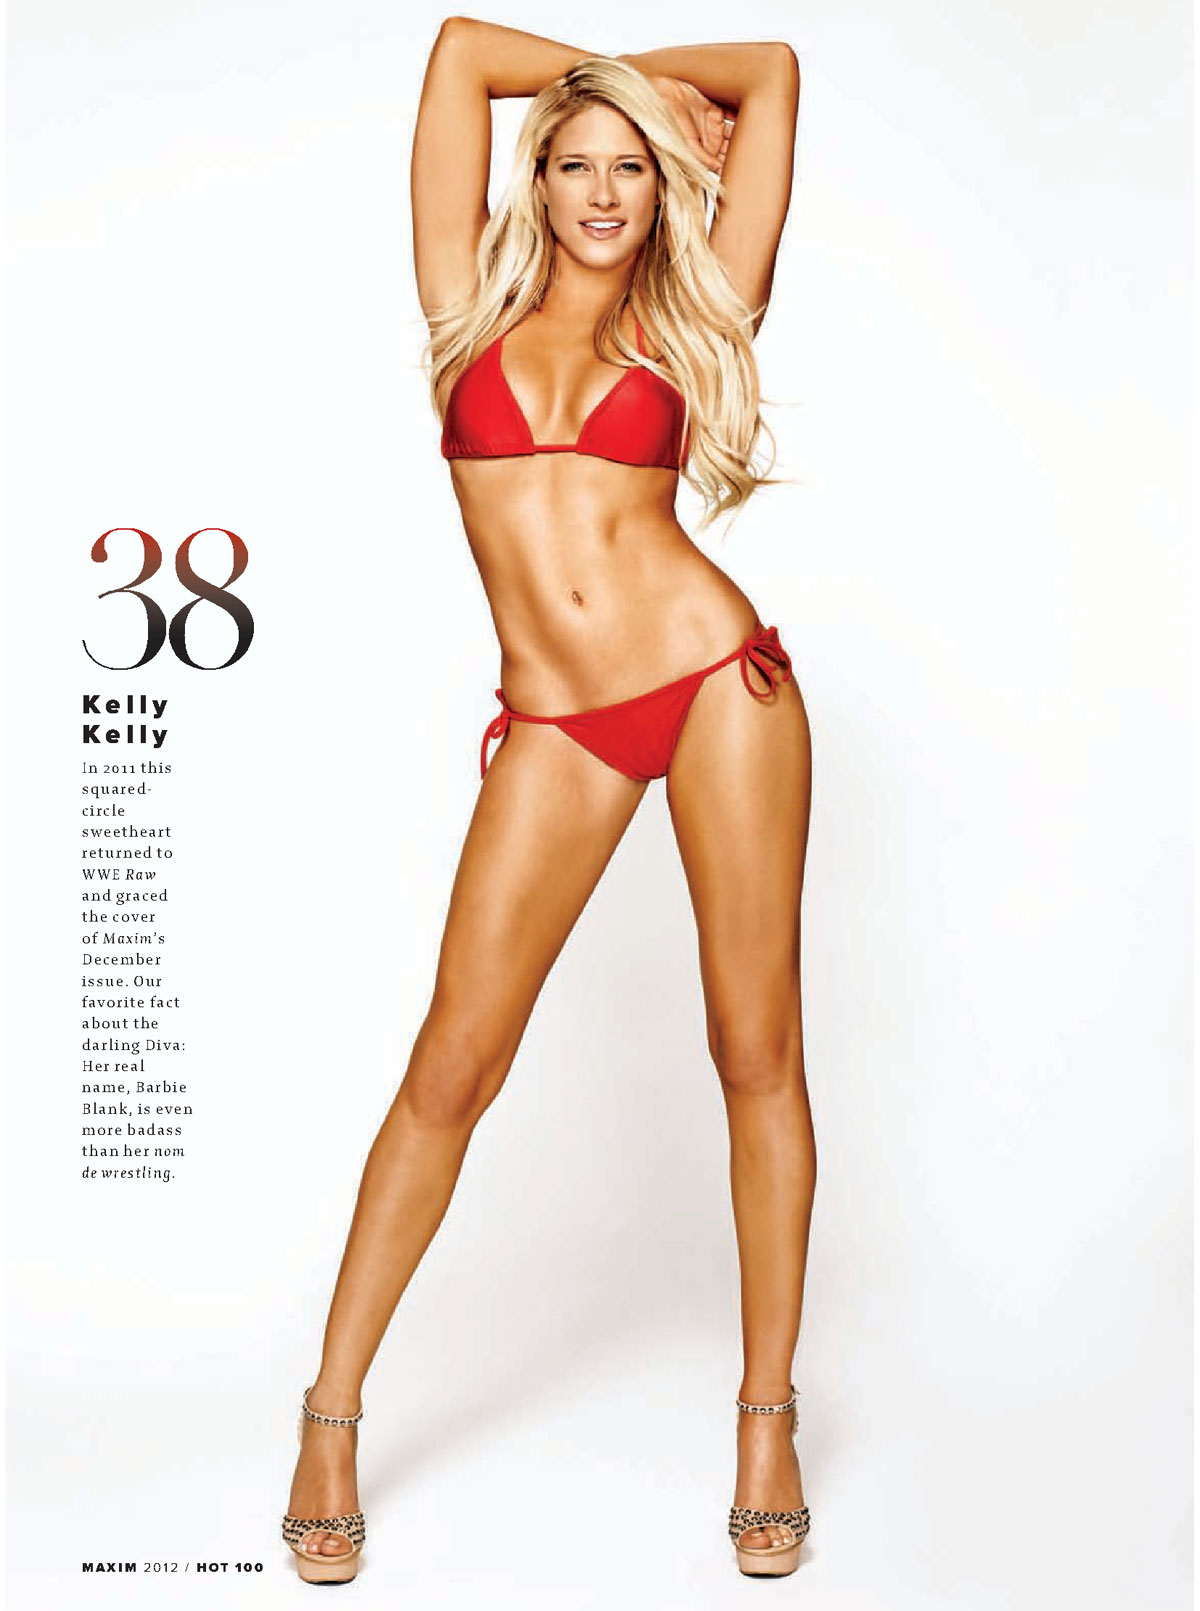 Maxim Magazine Hot 100 2008 List of the World's Most Beautiful Women